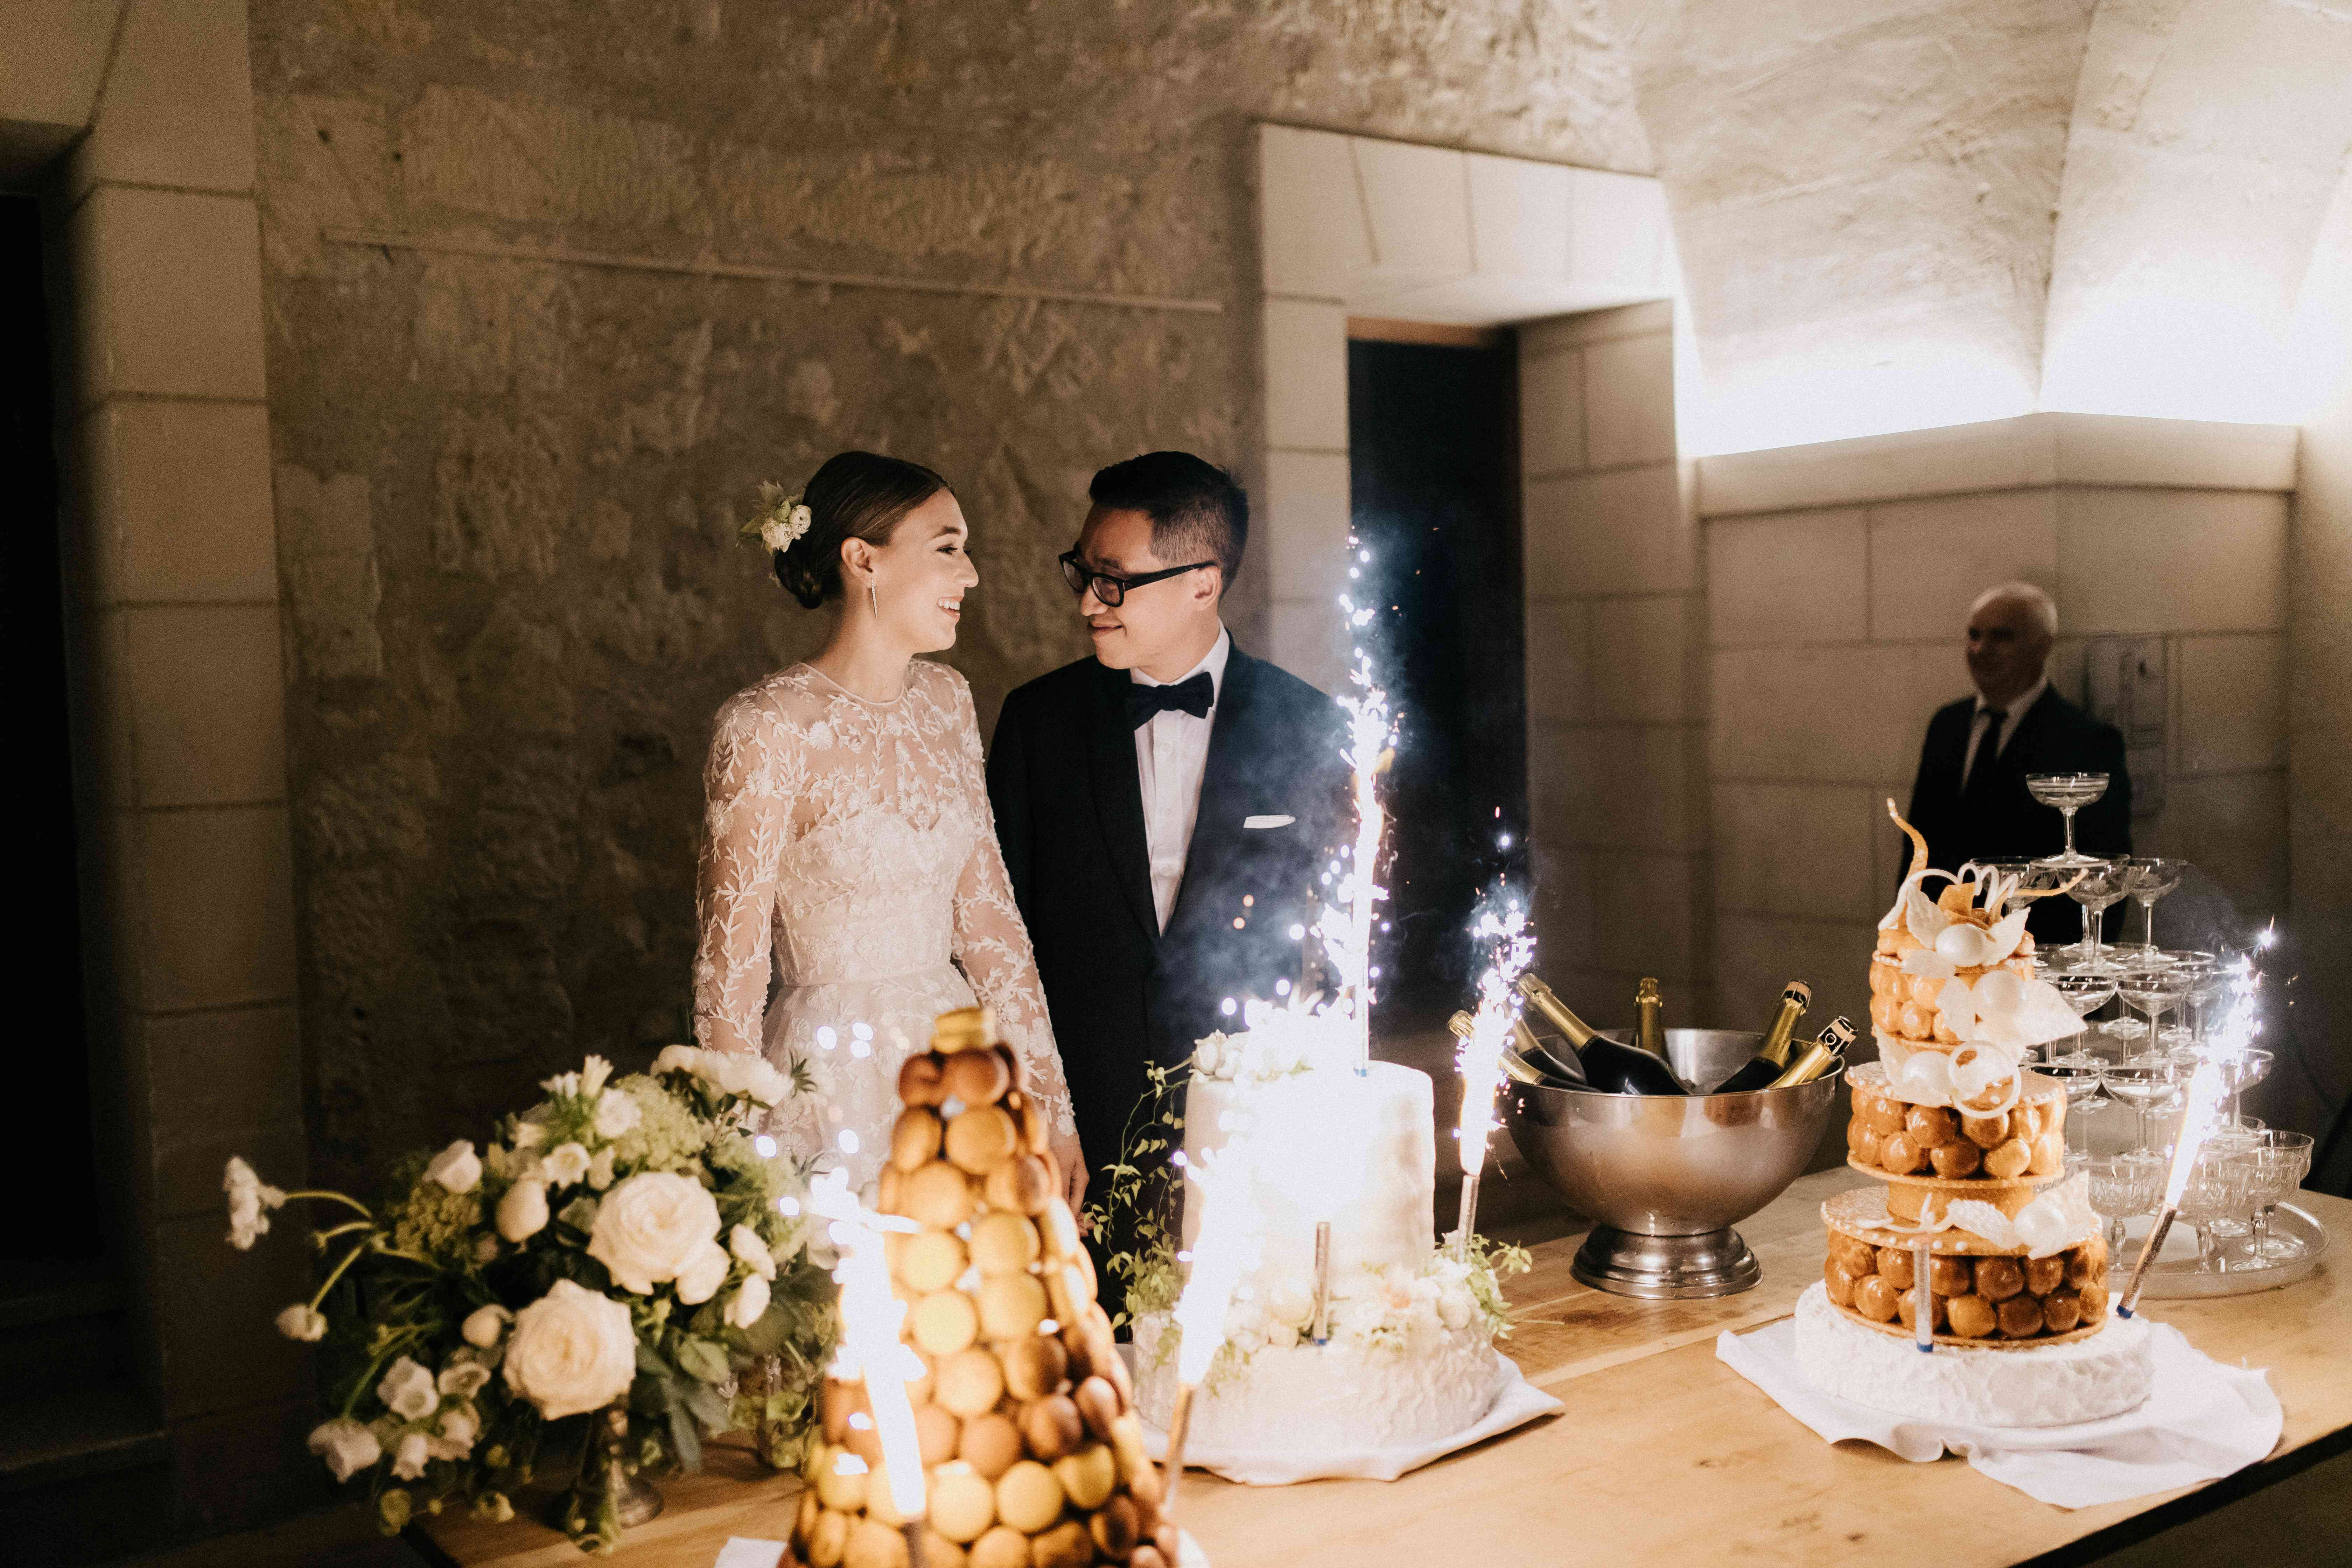 <p>macaroon tower sparklers on cake</p><br><br>